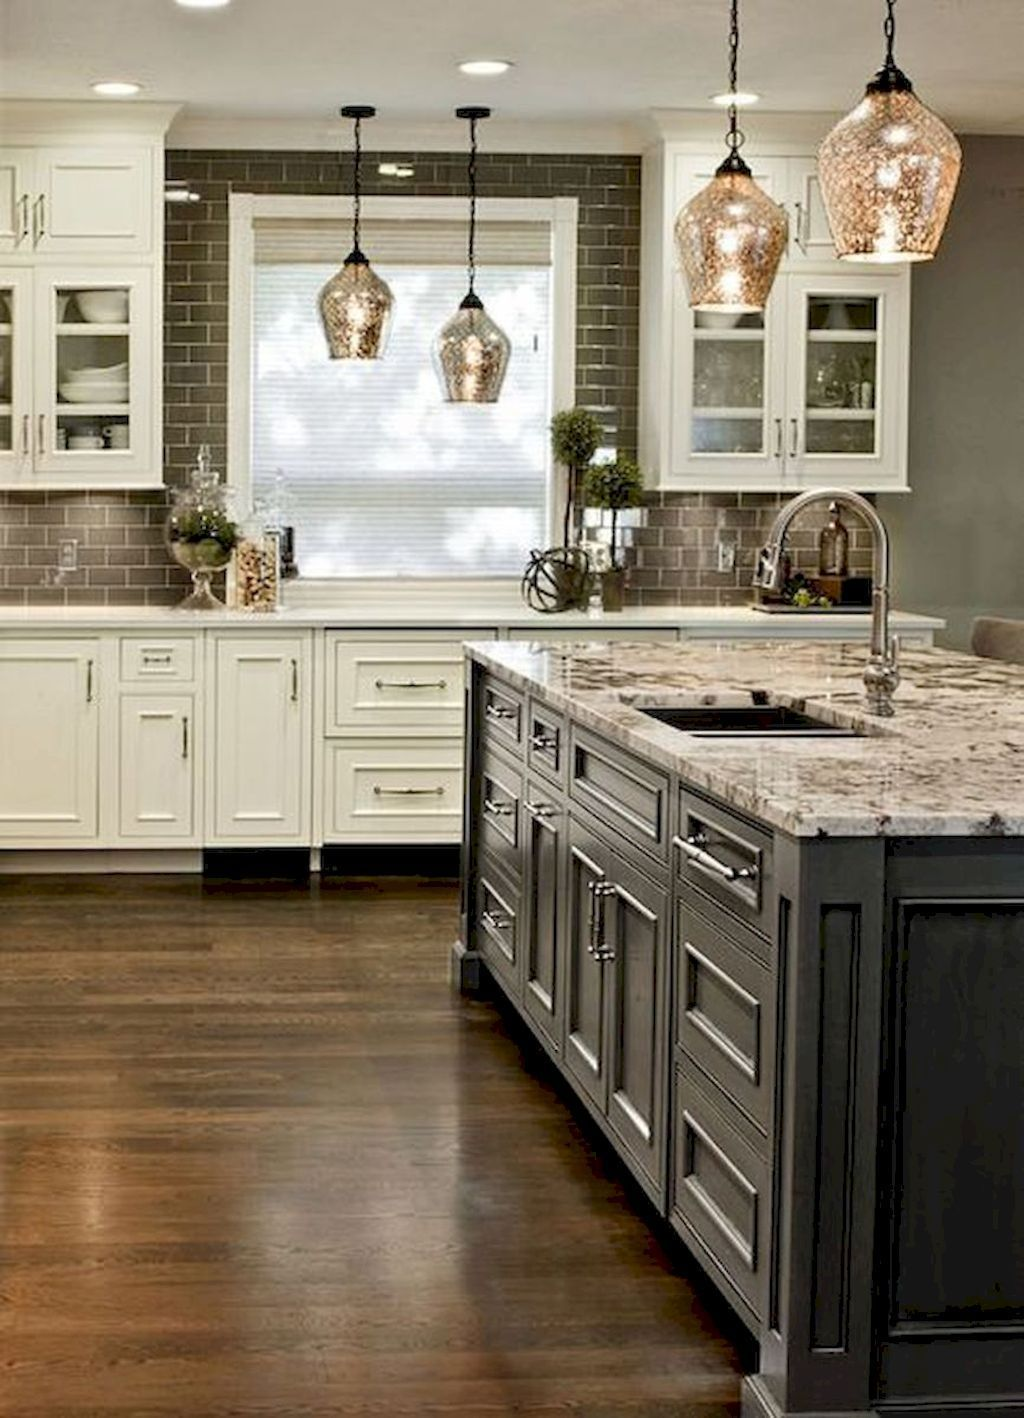 awesome 85 rustic farmhouse kitchen cabinets makeover ideas https hom modern kitchen design on farmhouse kitchen decor countertop id=82367